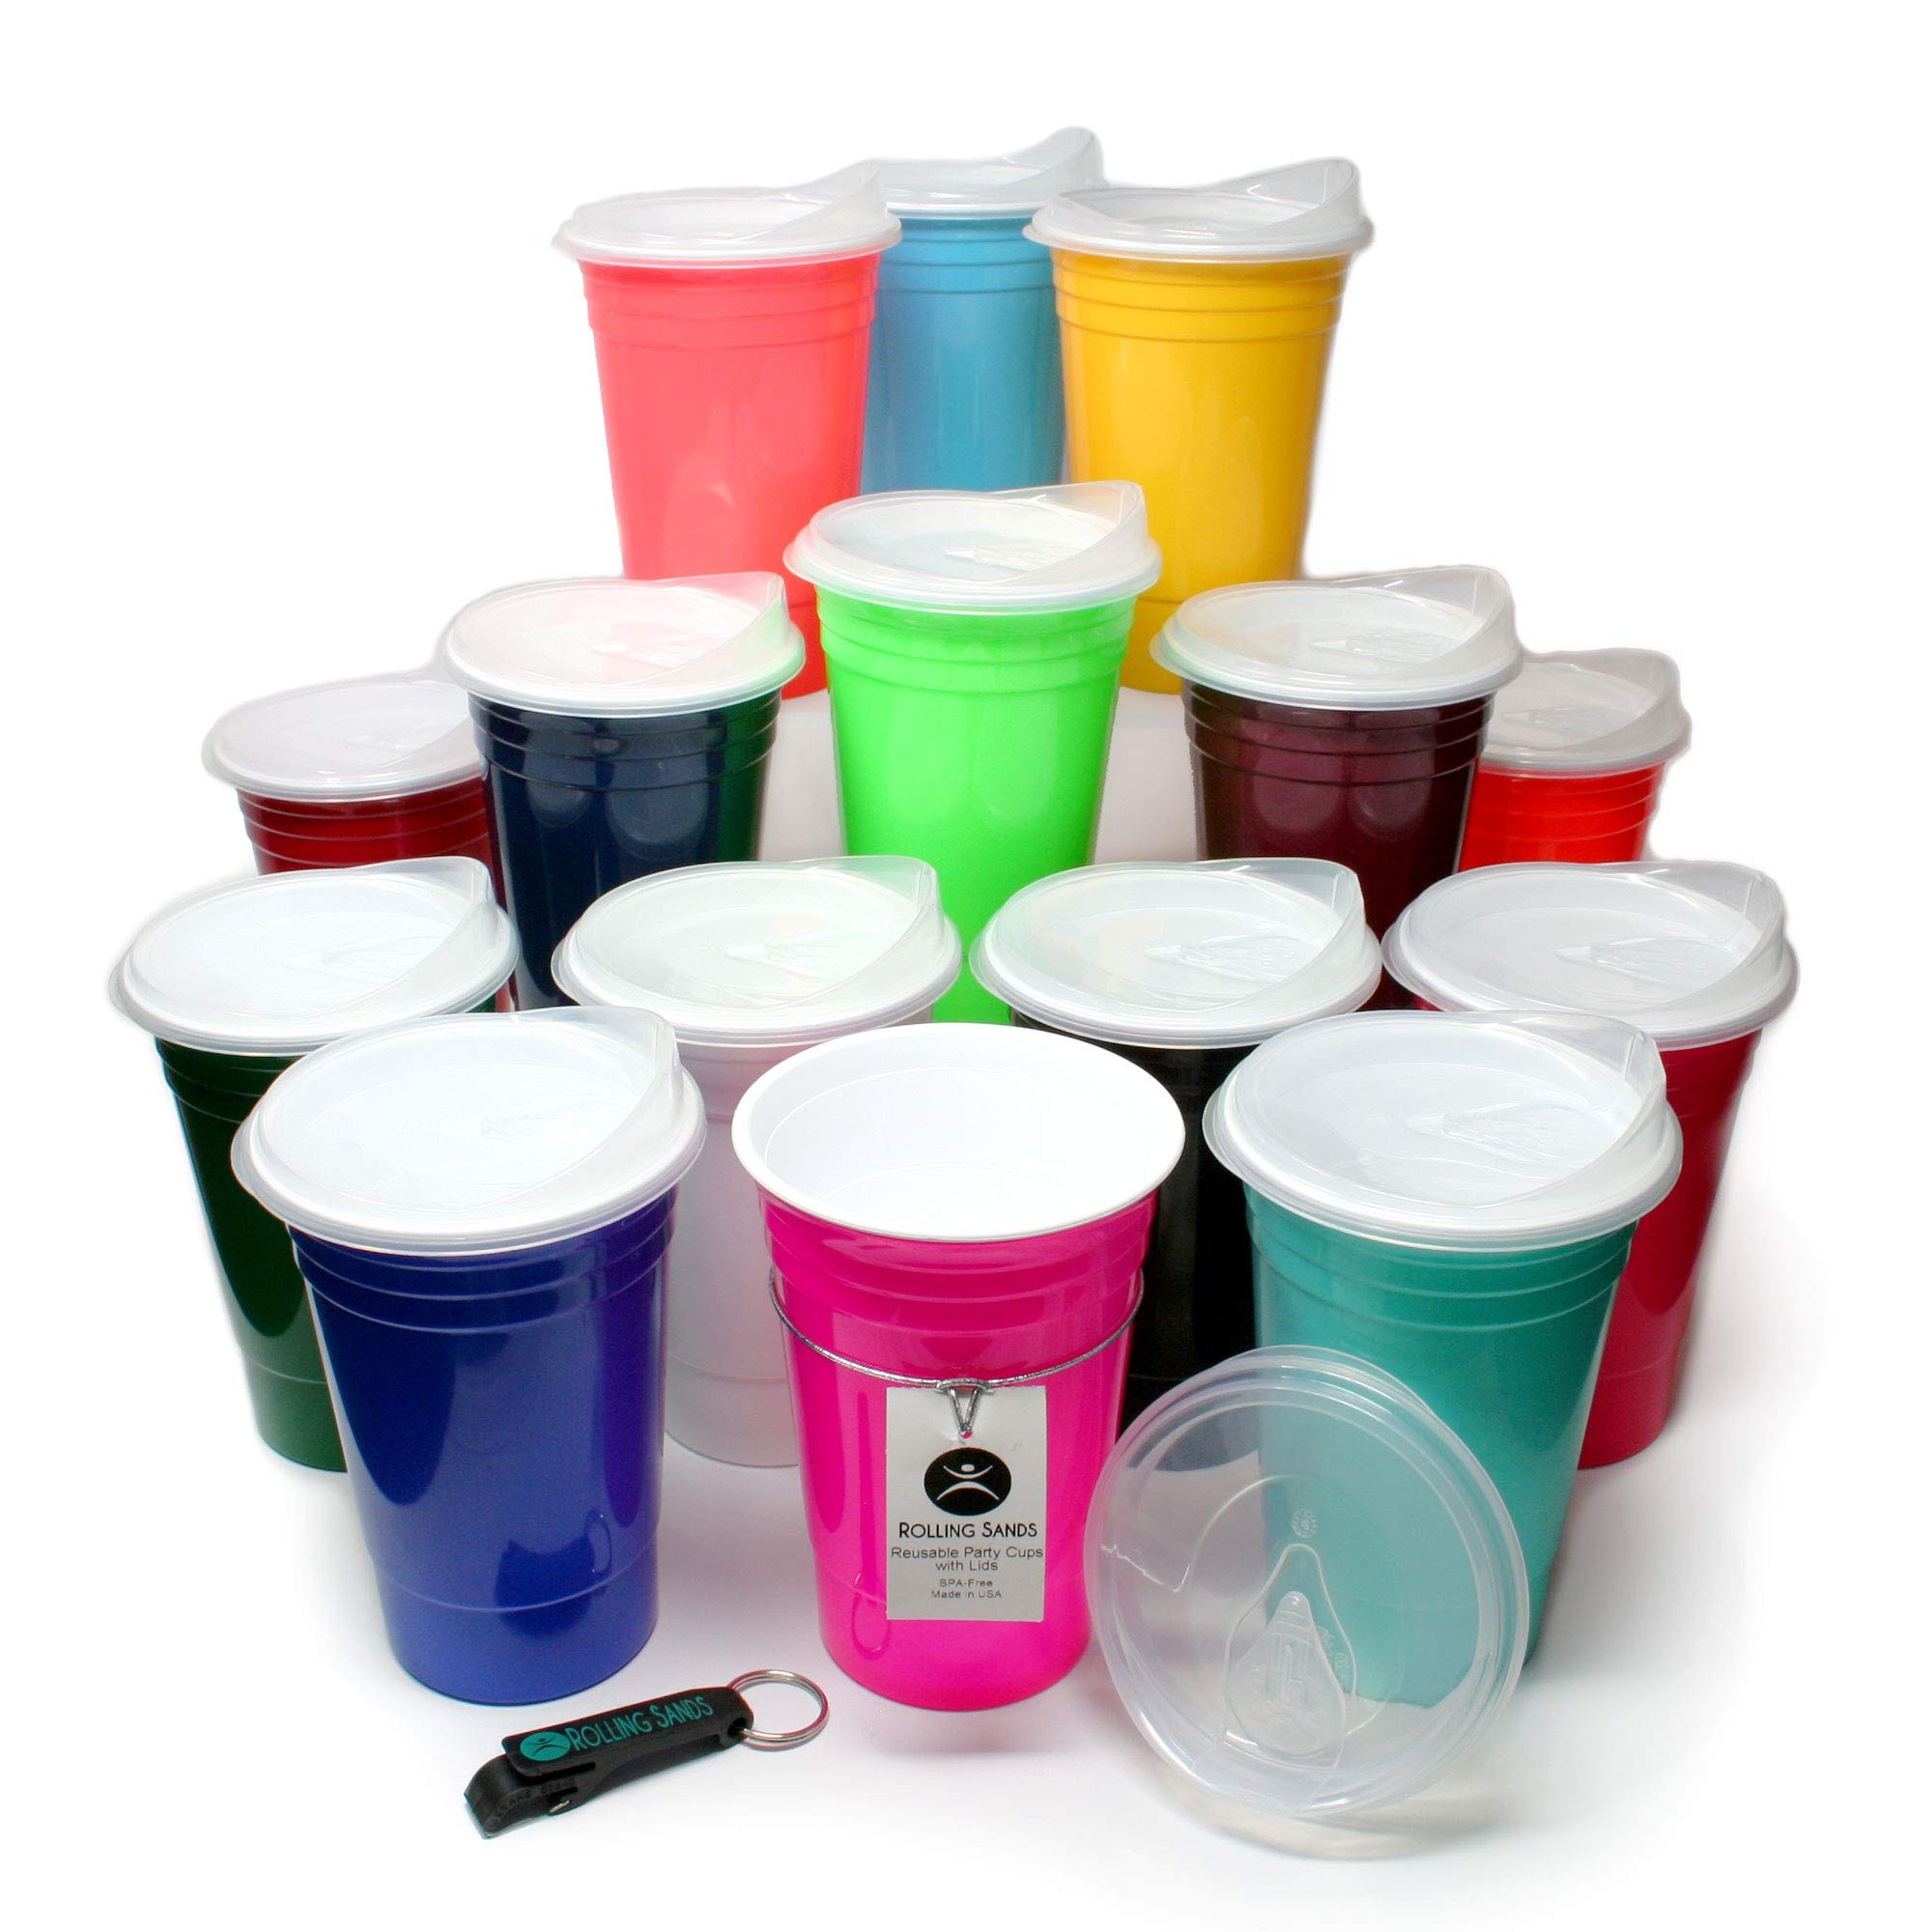 Rolling Sands Reusable BPA-Free 16 Ounce Party Cups with Lids - 15 Pack, Made in USA, Variety Party Pack